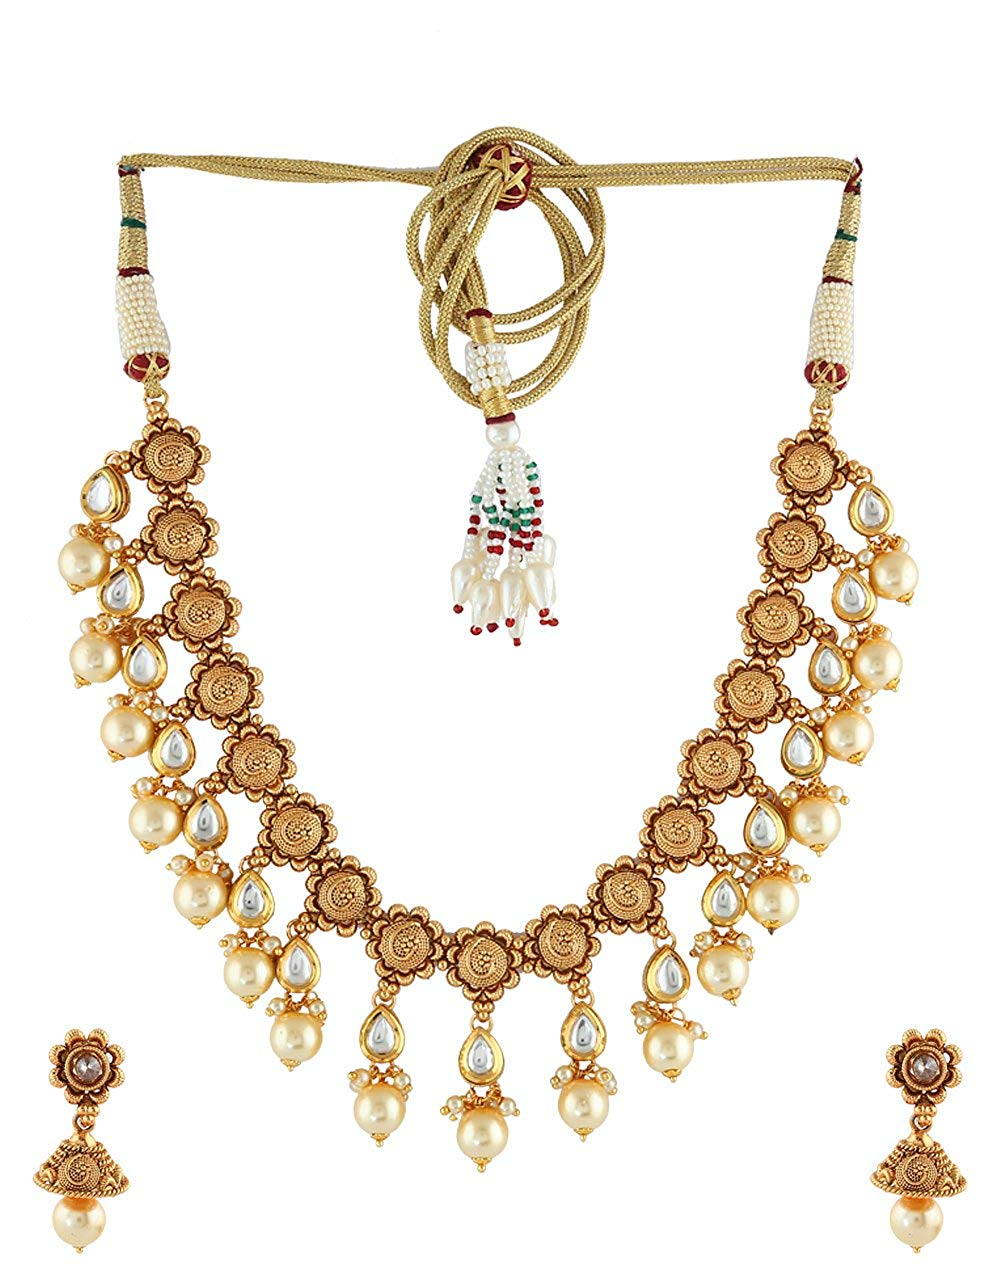 Anuradha Art Golden Finish Styled With Stone With Pearls Beads Designer Traditional Necklace Set For Women/Girls